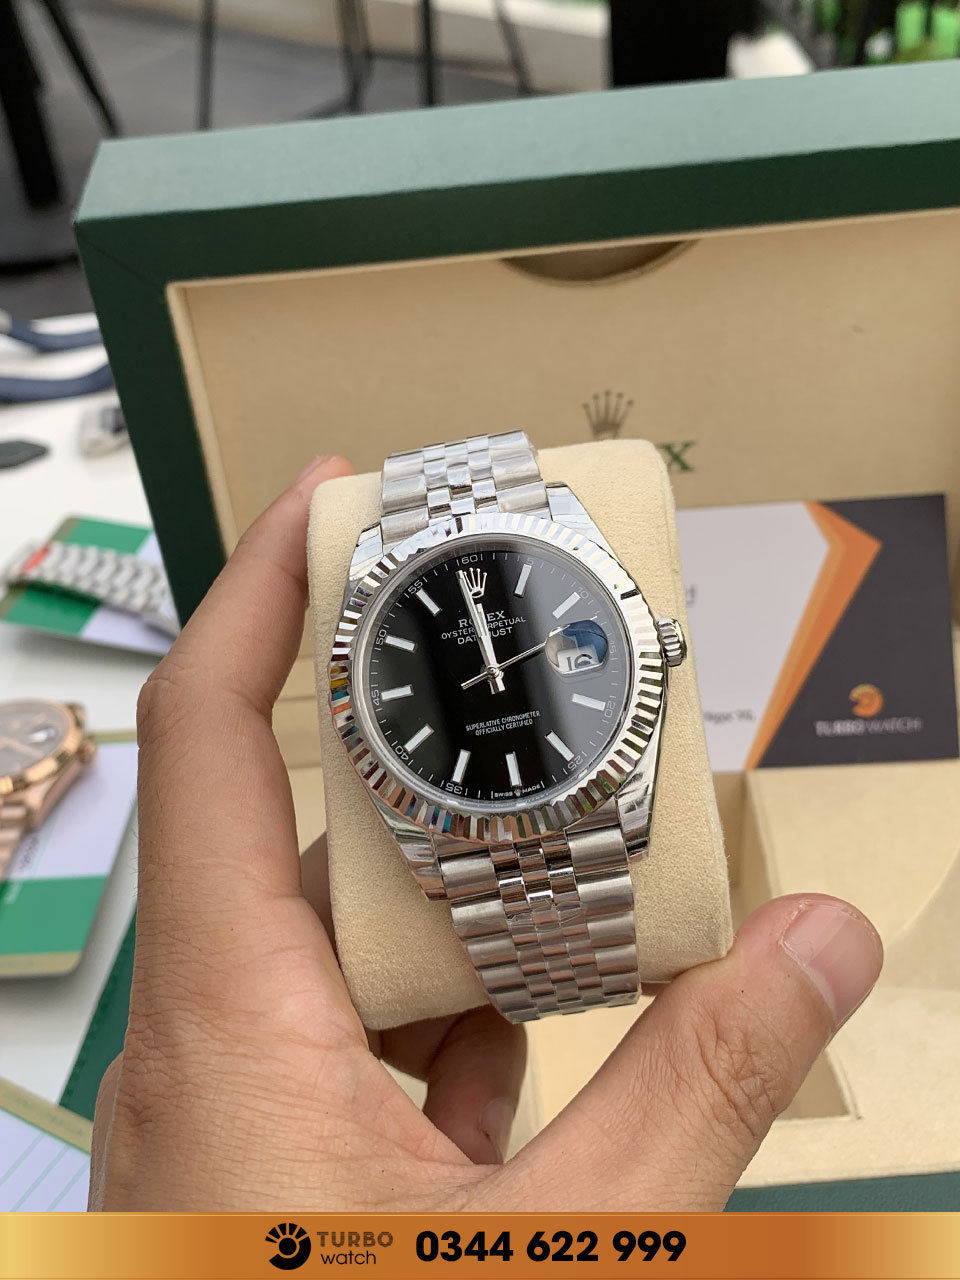 Rolex Oyster Perpetual Datejust Black Dial Jubilee fake 1-1 siêu cấp